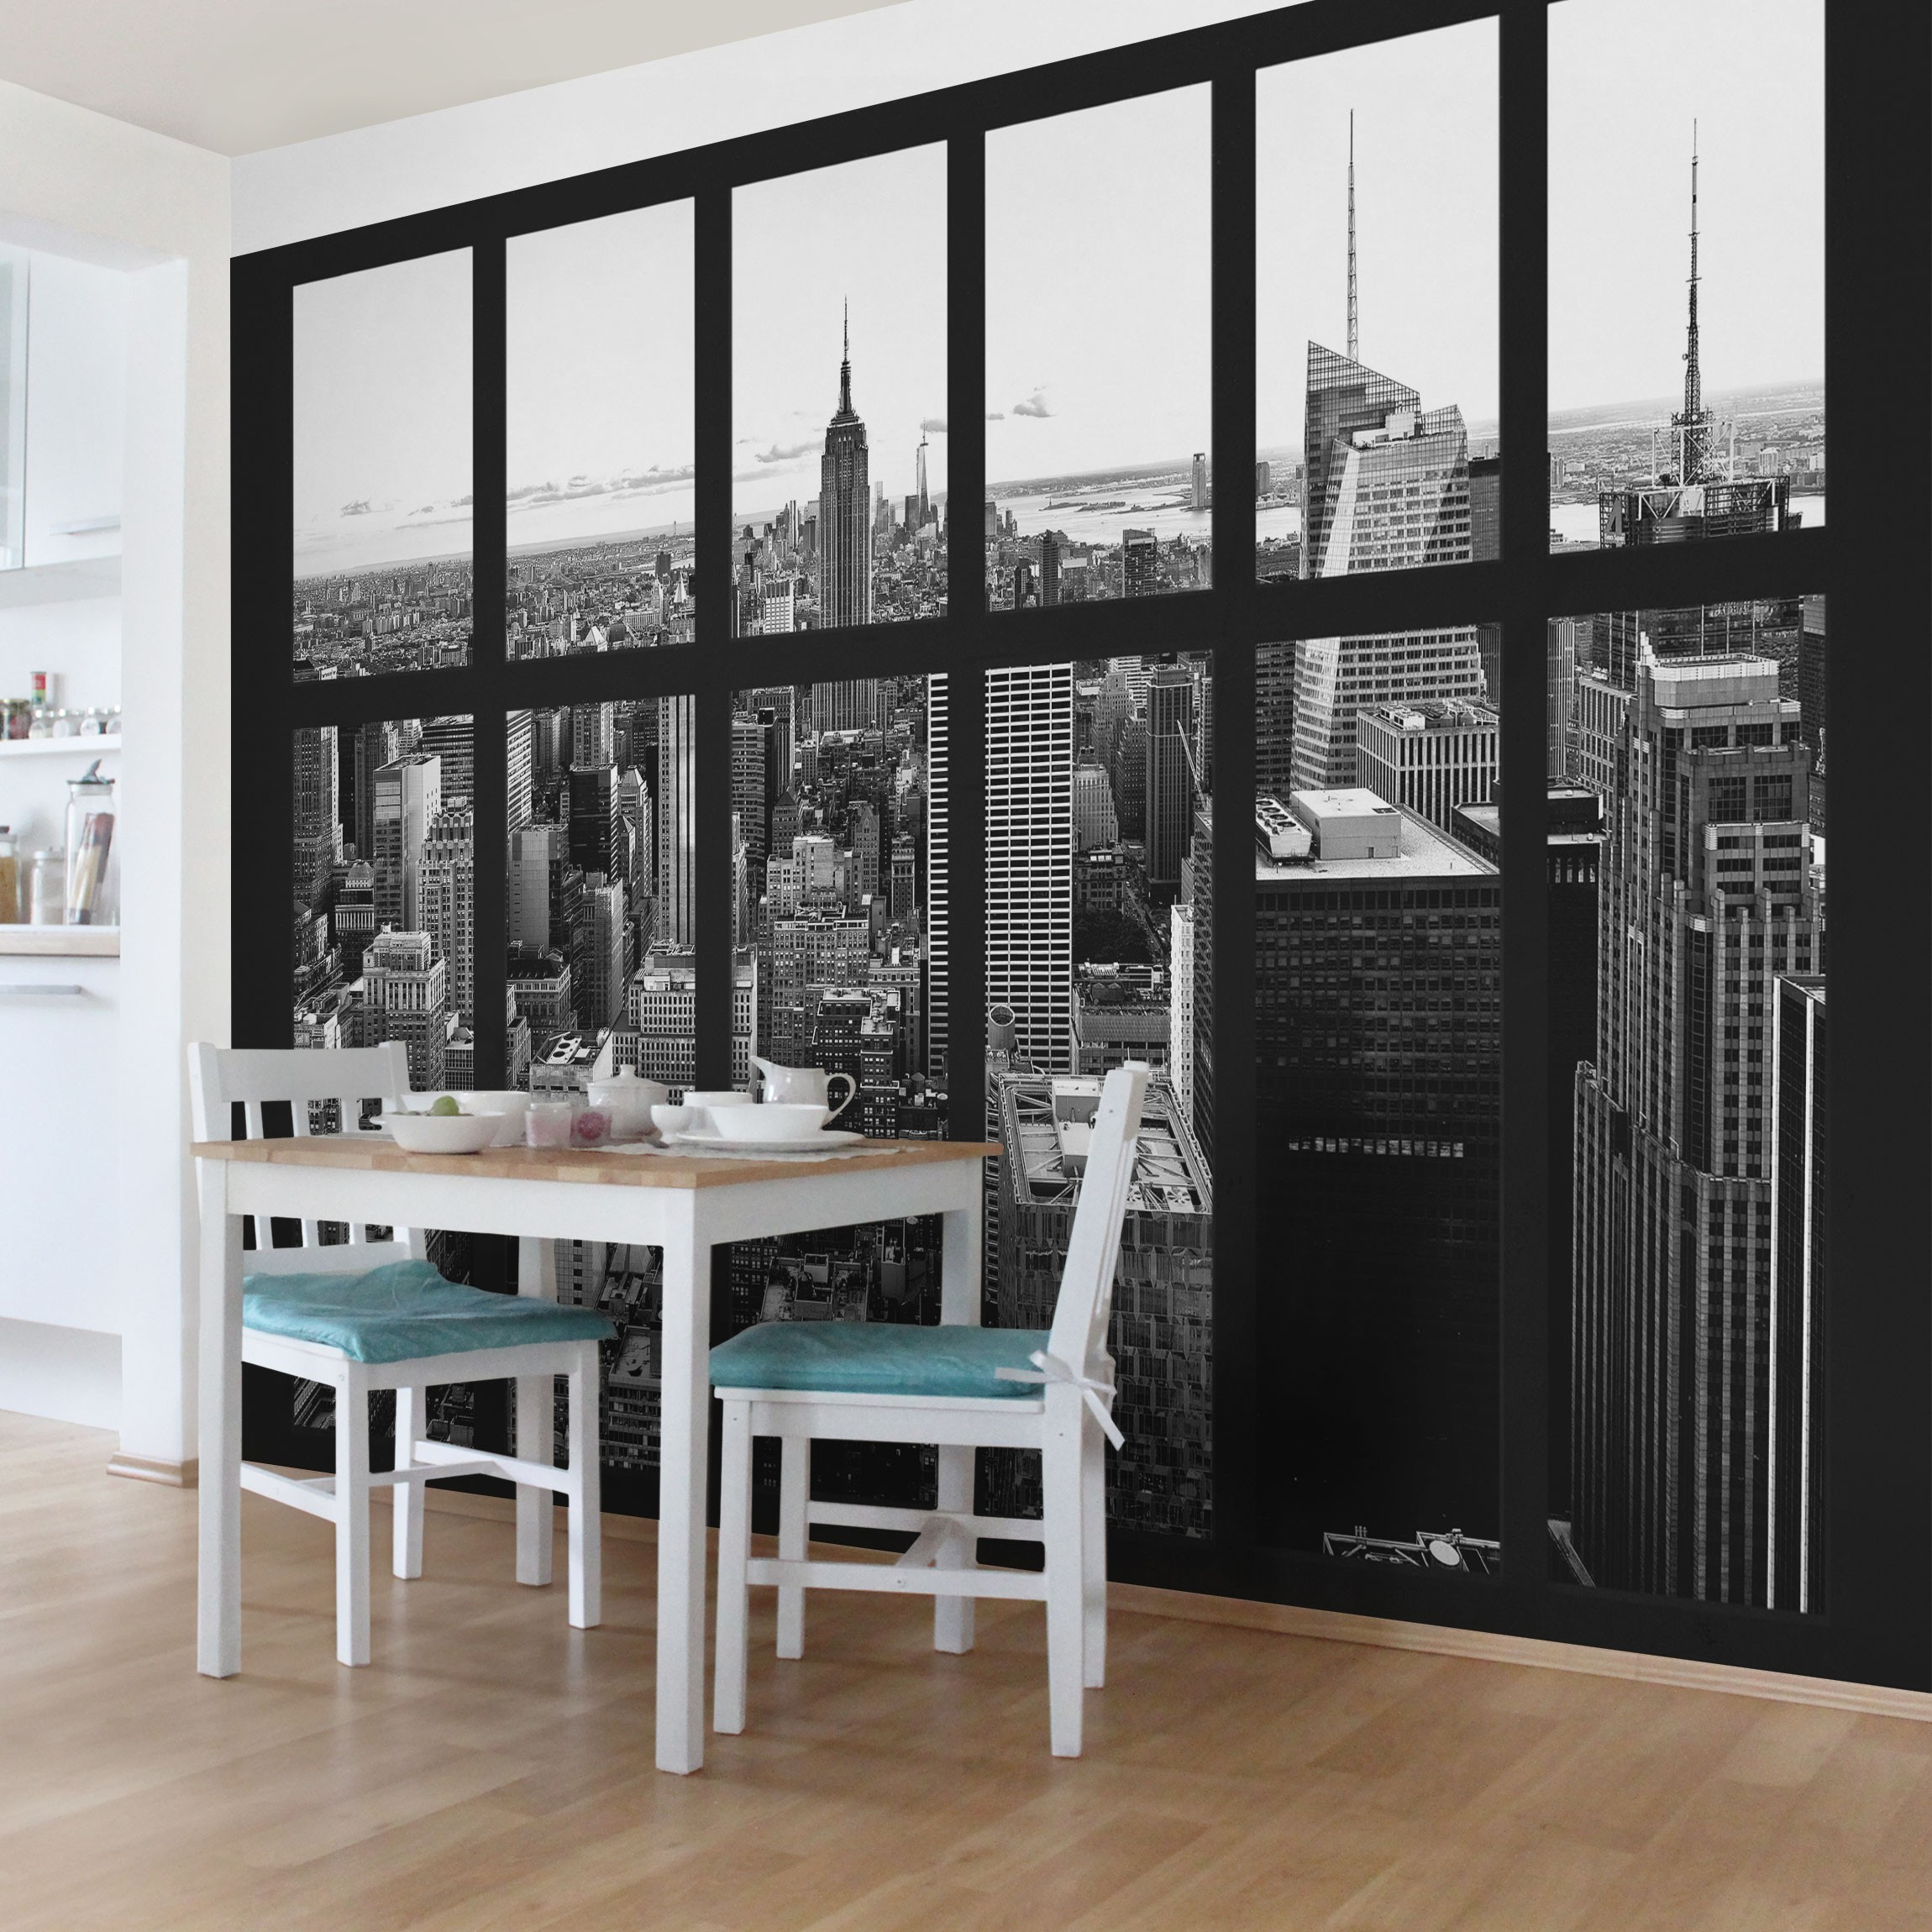 new york fototapete selbstklebend fenster manhattan skyline schwarz weiss. Black Bedroom Furniture Sets. Home Design Ideas